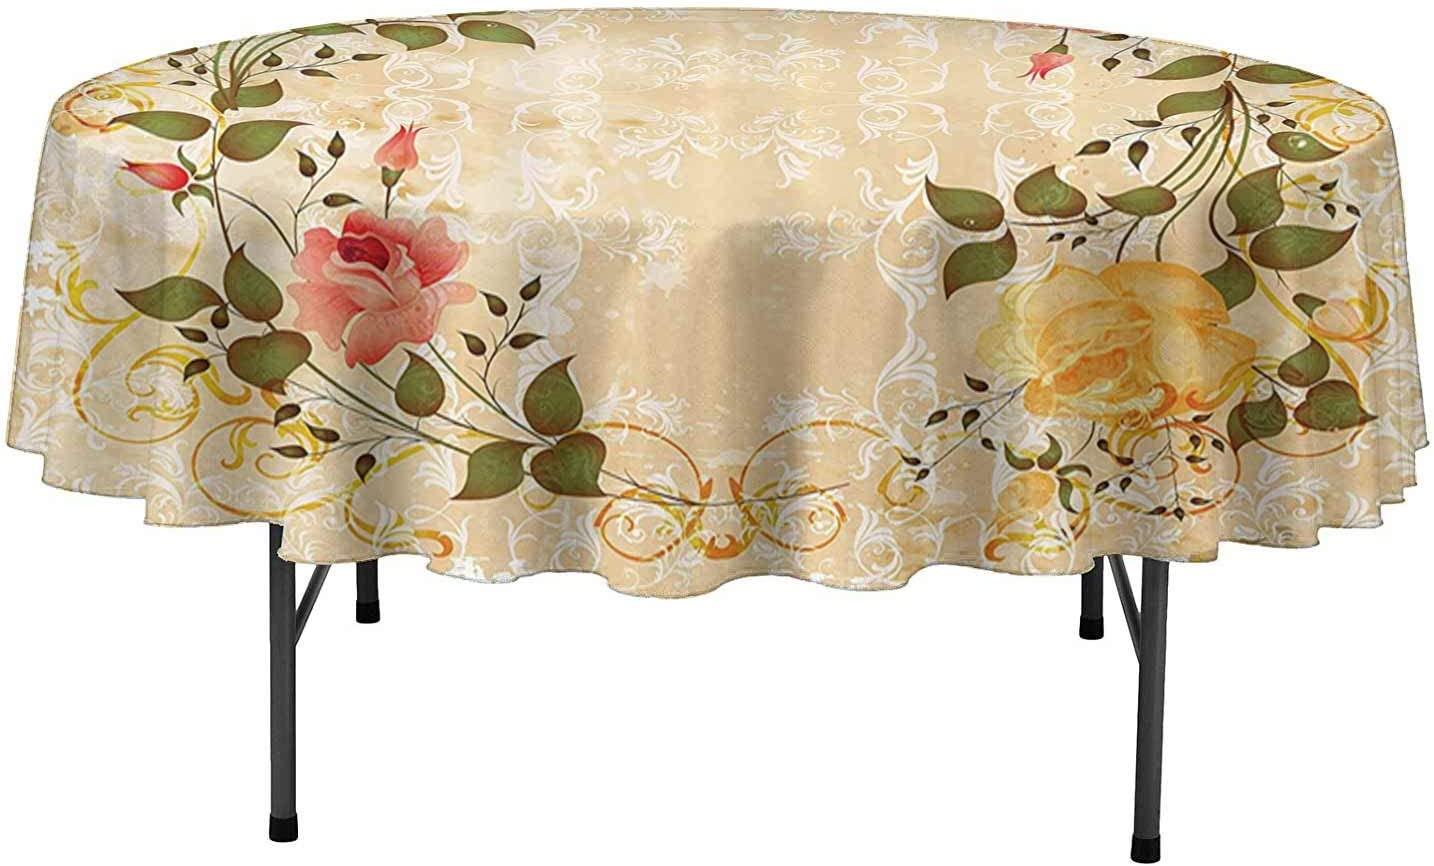 Large 57 x 100 Floral Tablecloth Damask Pinks Yellow Purple Full Bloom Flowers Picnic Summer Spring Wedding